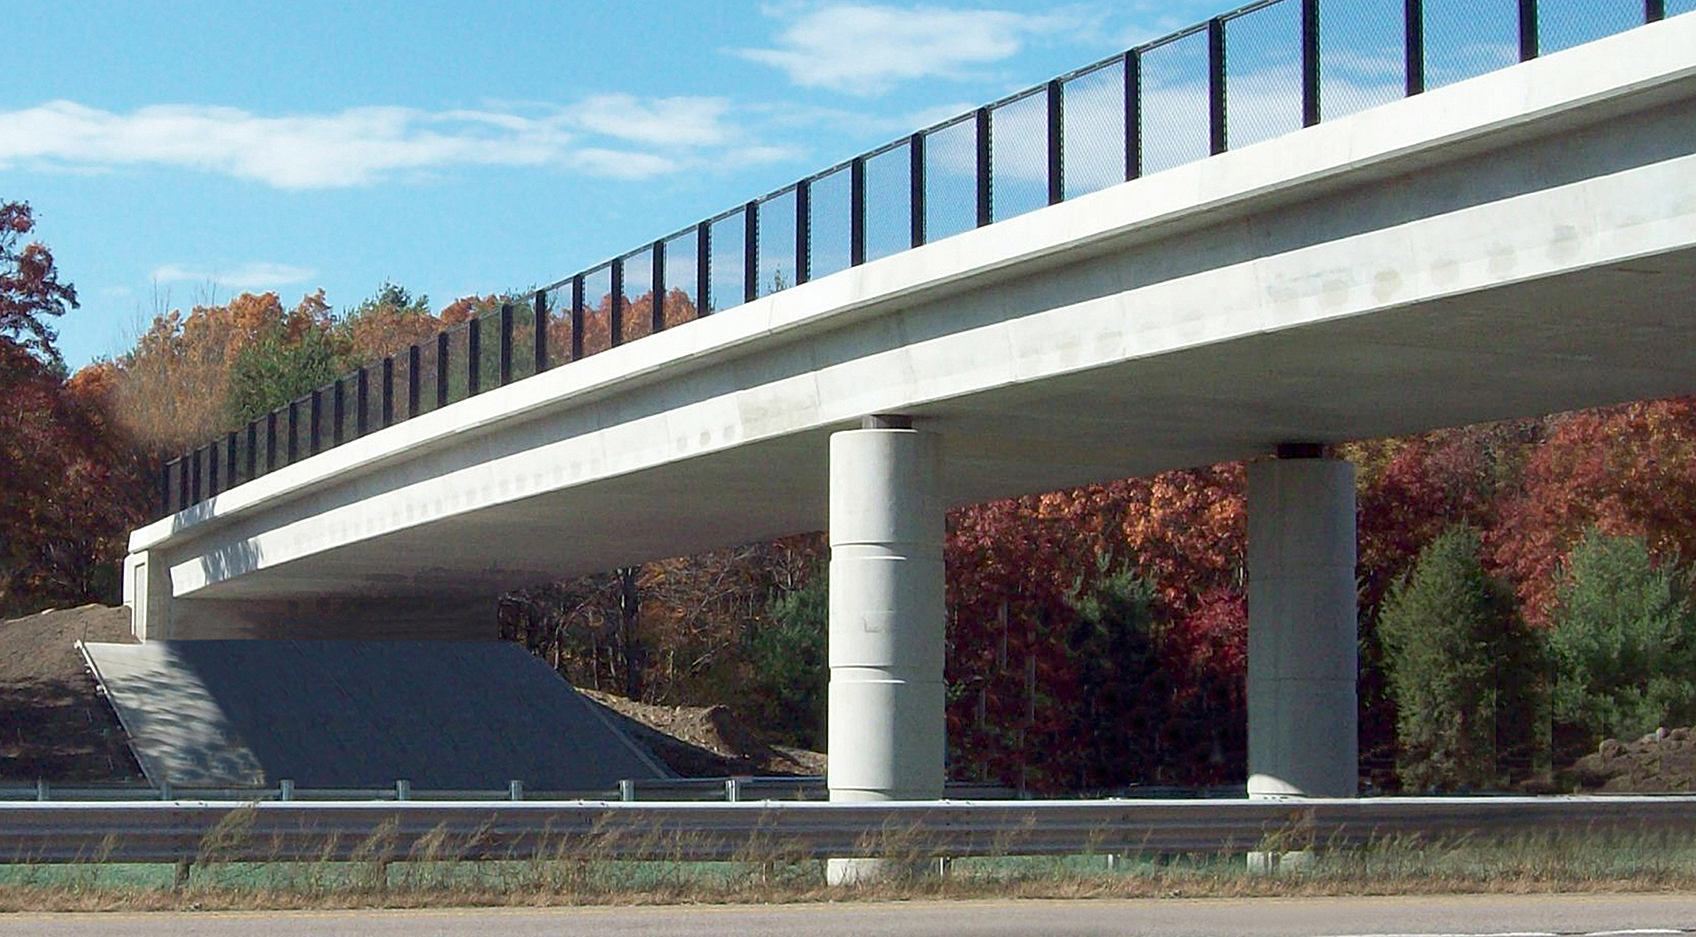 DCR ACCESS ROAD BRIDGE